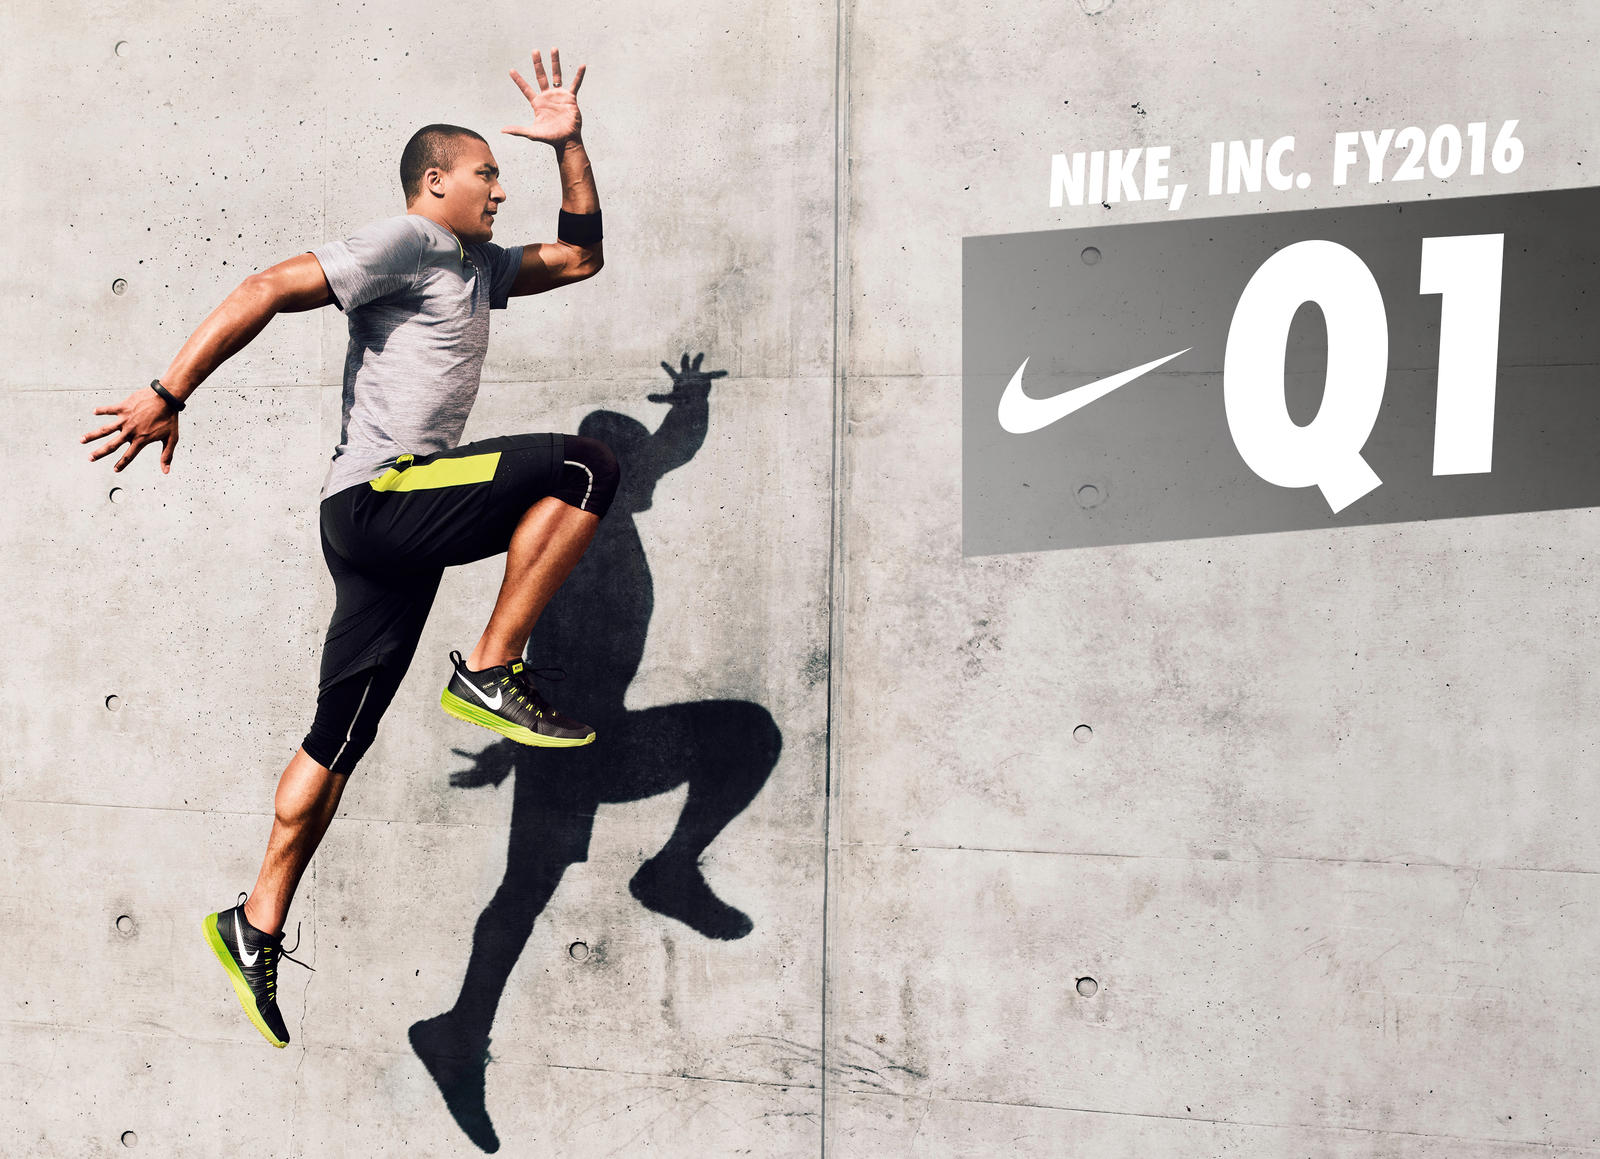 Redada cayó misil  NIKE, INC. Reports Fiscal 2016 First Quarter Results - Nike News